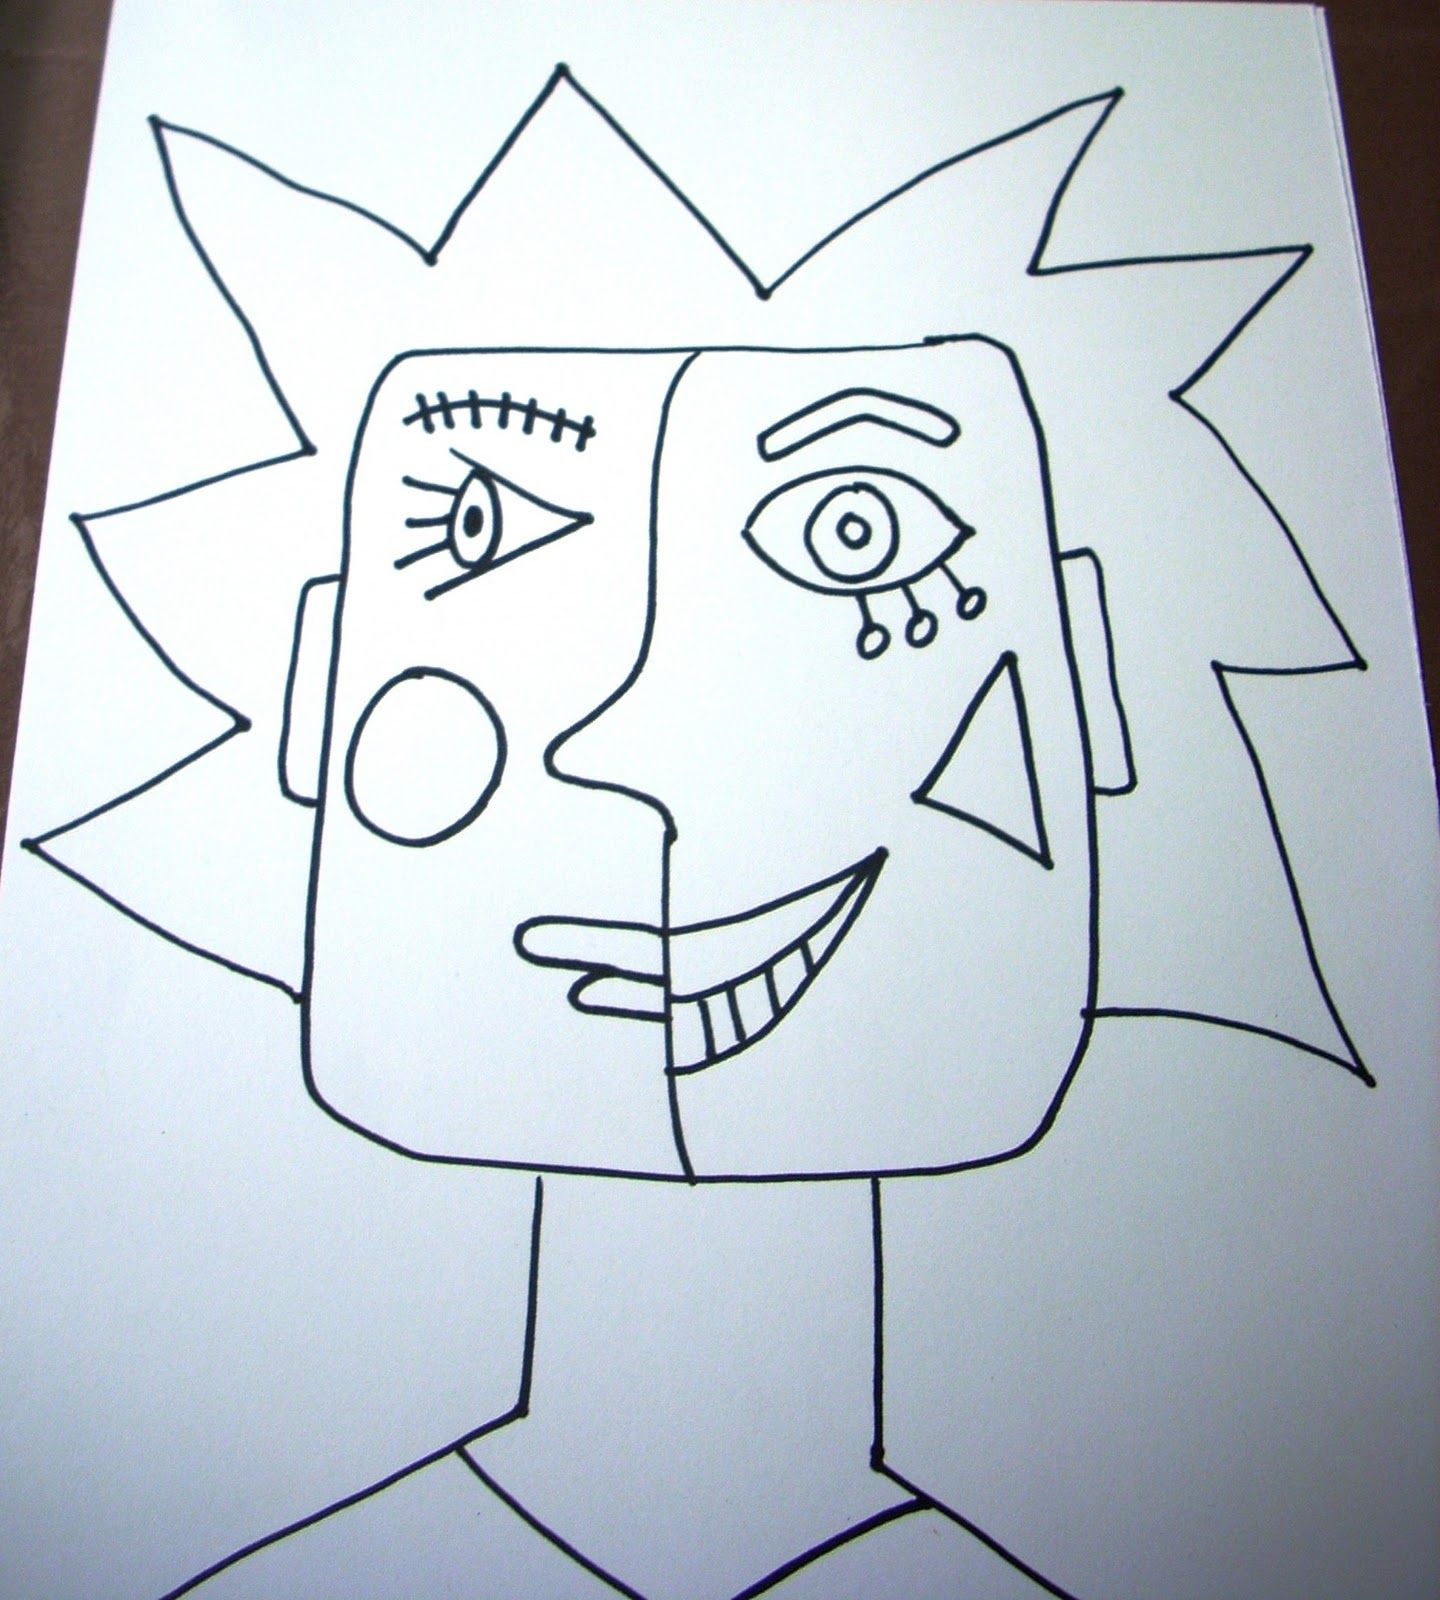 Pablo Picasso Cubism For Kids Art Worldwide Picasso Art Pablo Picasso Art Picasso Cubism